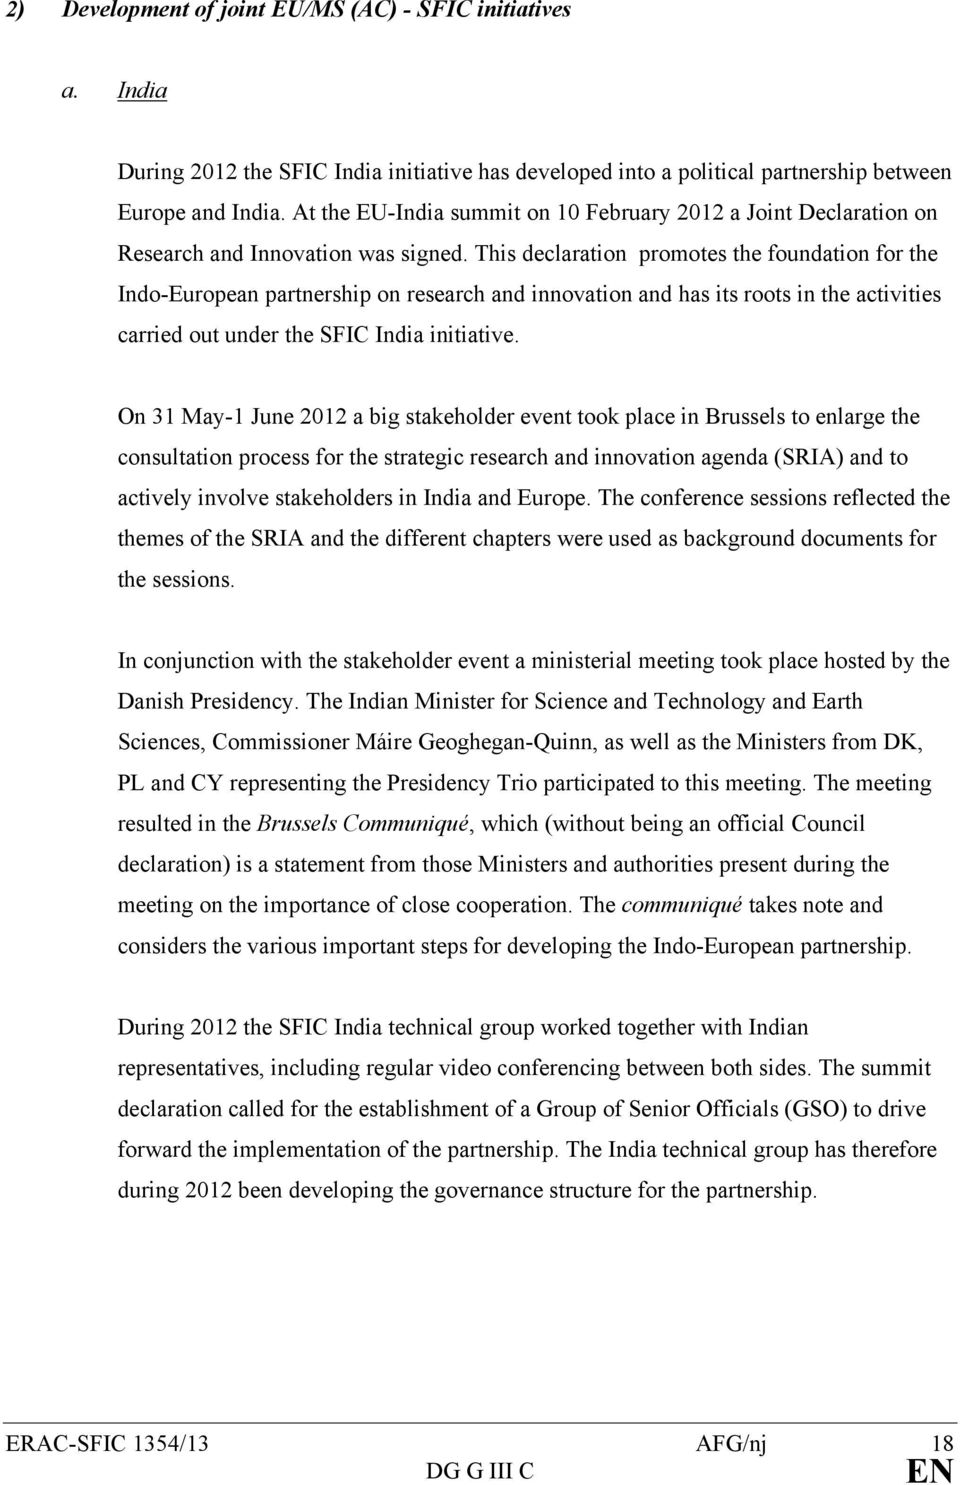 This declaration promotes the foundation for the Indo-European partnership on research and innovation and has its roots in the activities carried out under the SFIC India initiative.